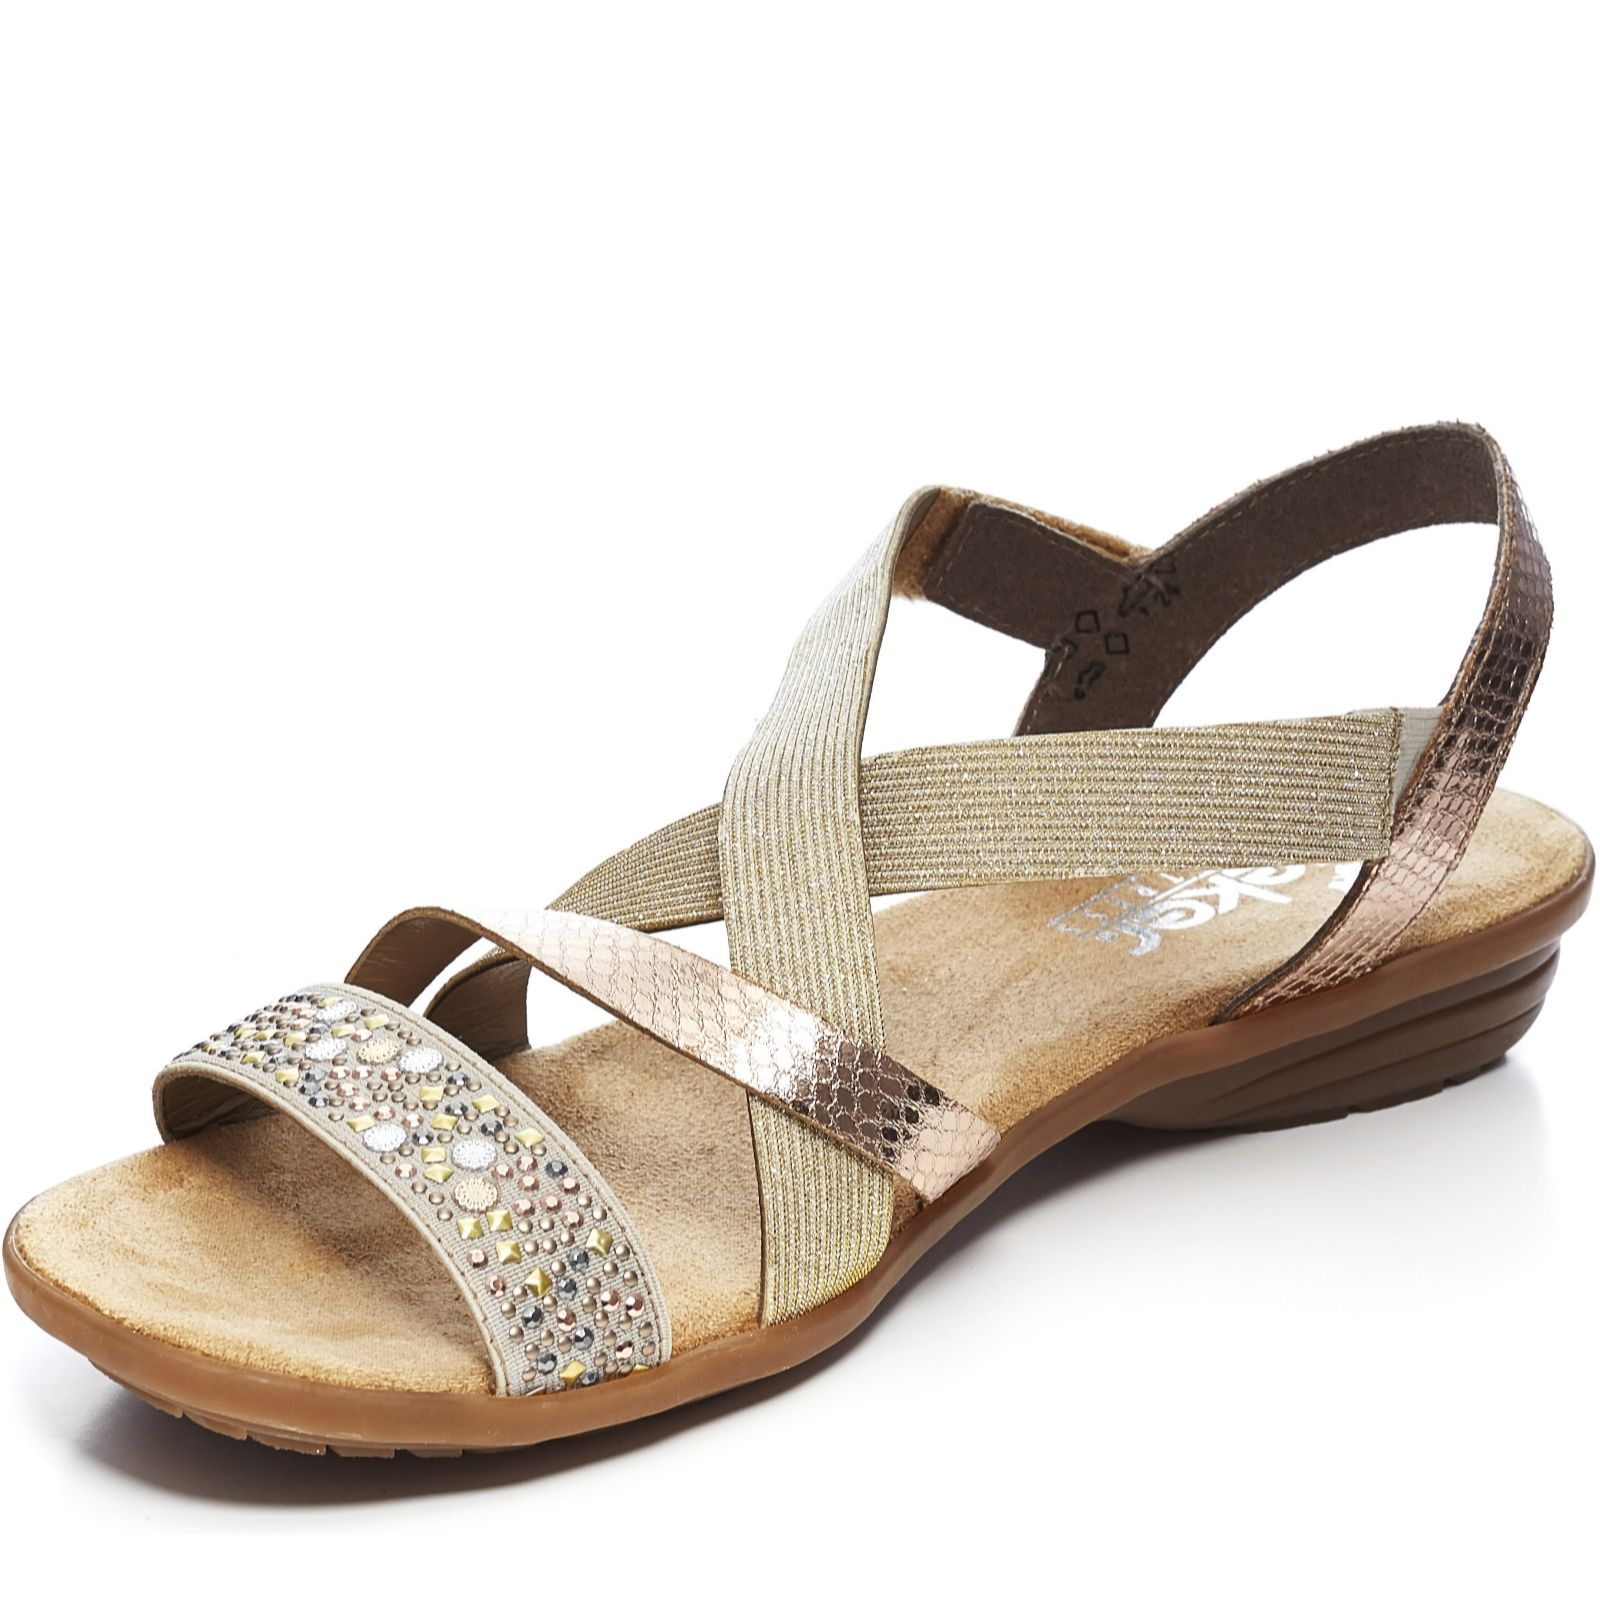 6debc34437e1 Rieker Elastic Cross Over Metallic Strap Sandal - QVC UK